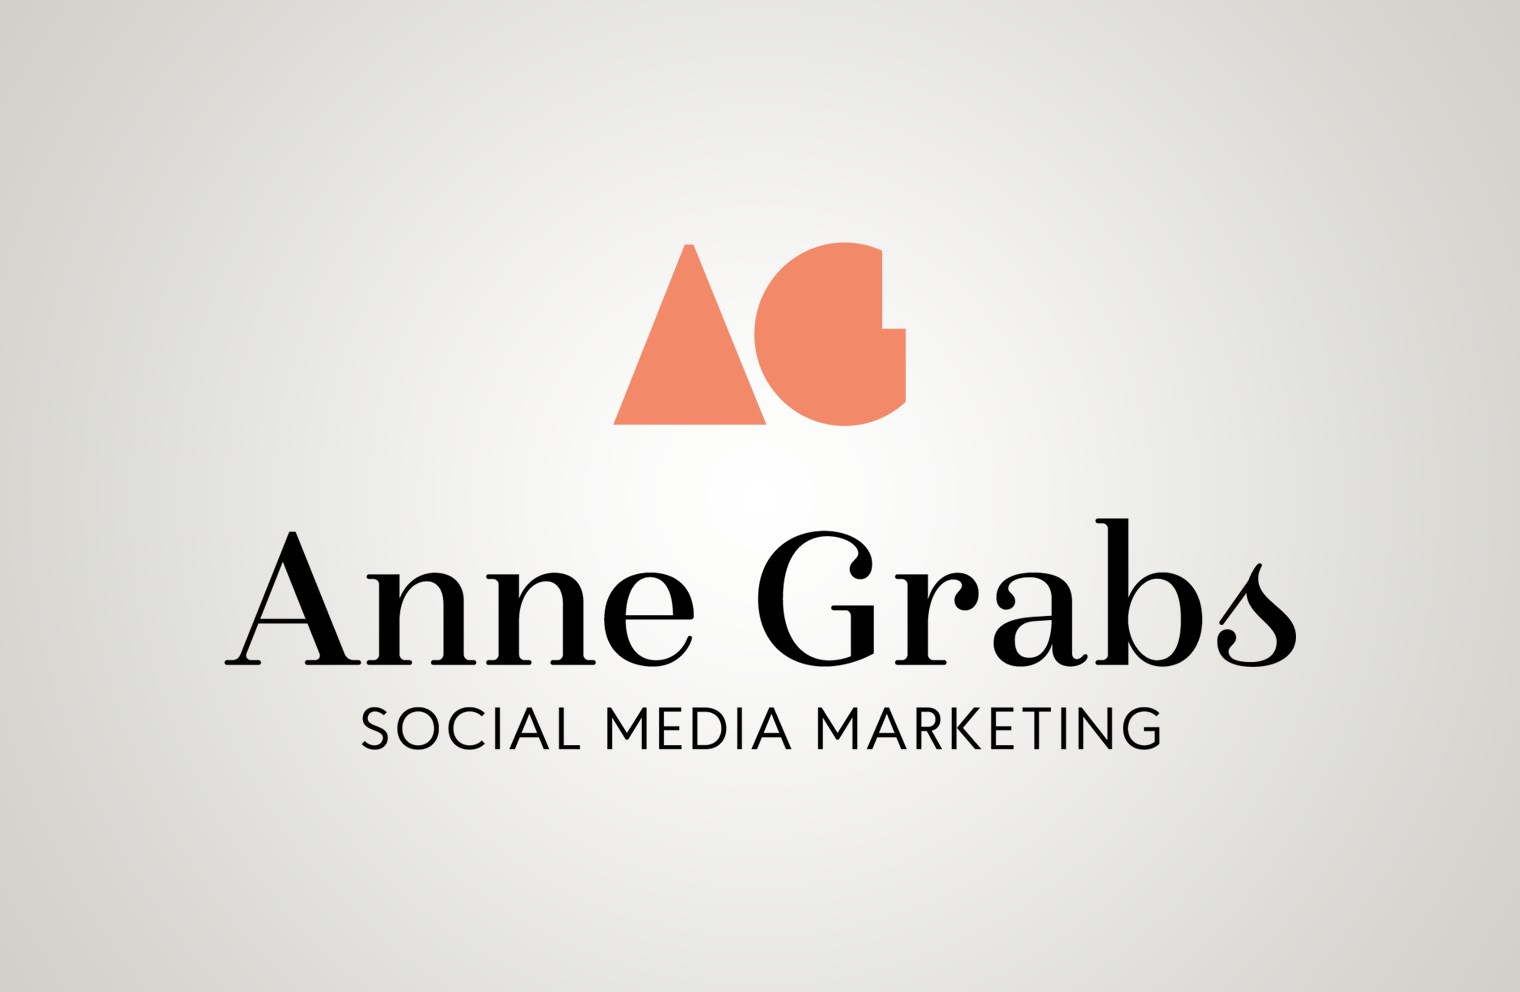 Anne-Grabs-logo-slide